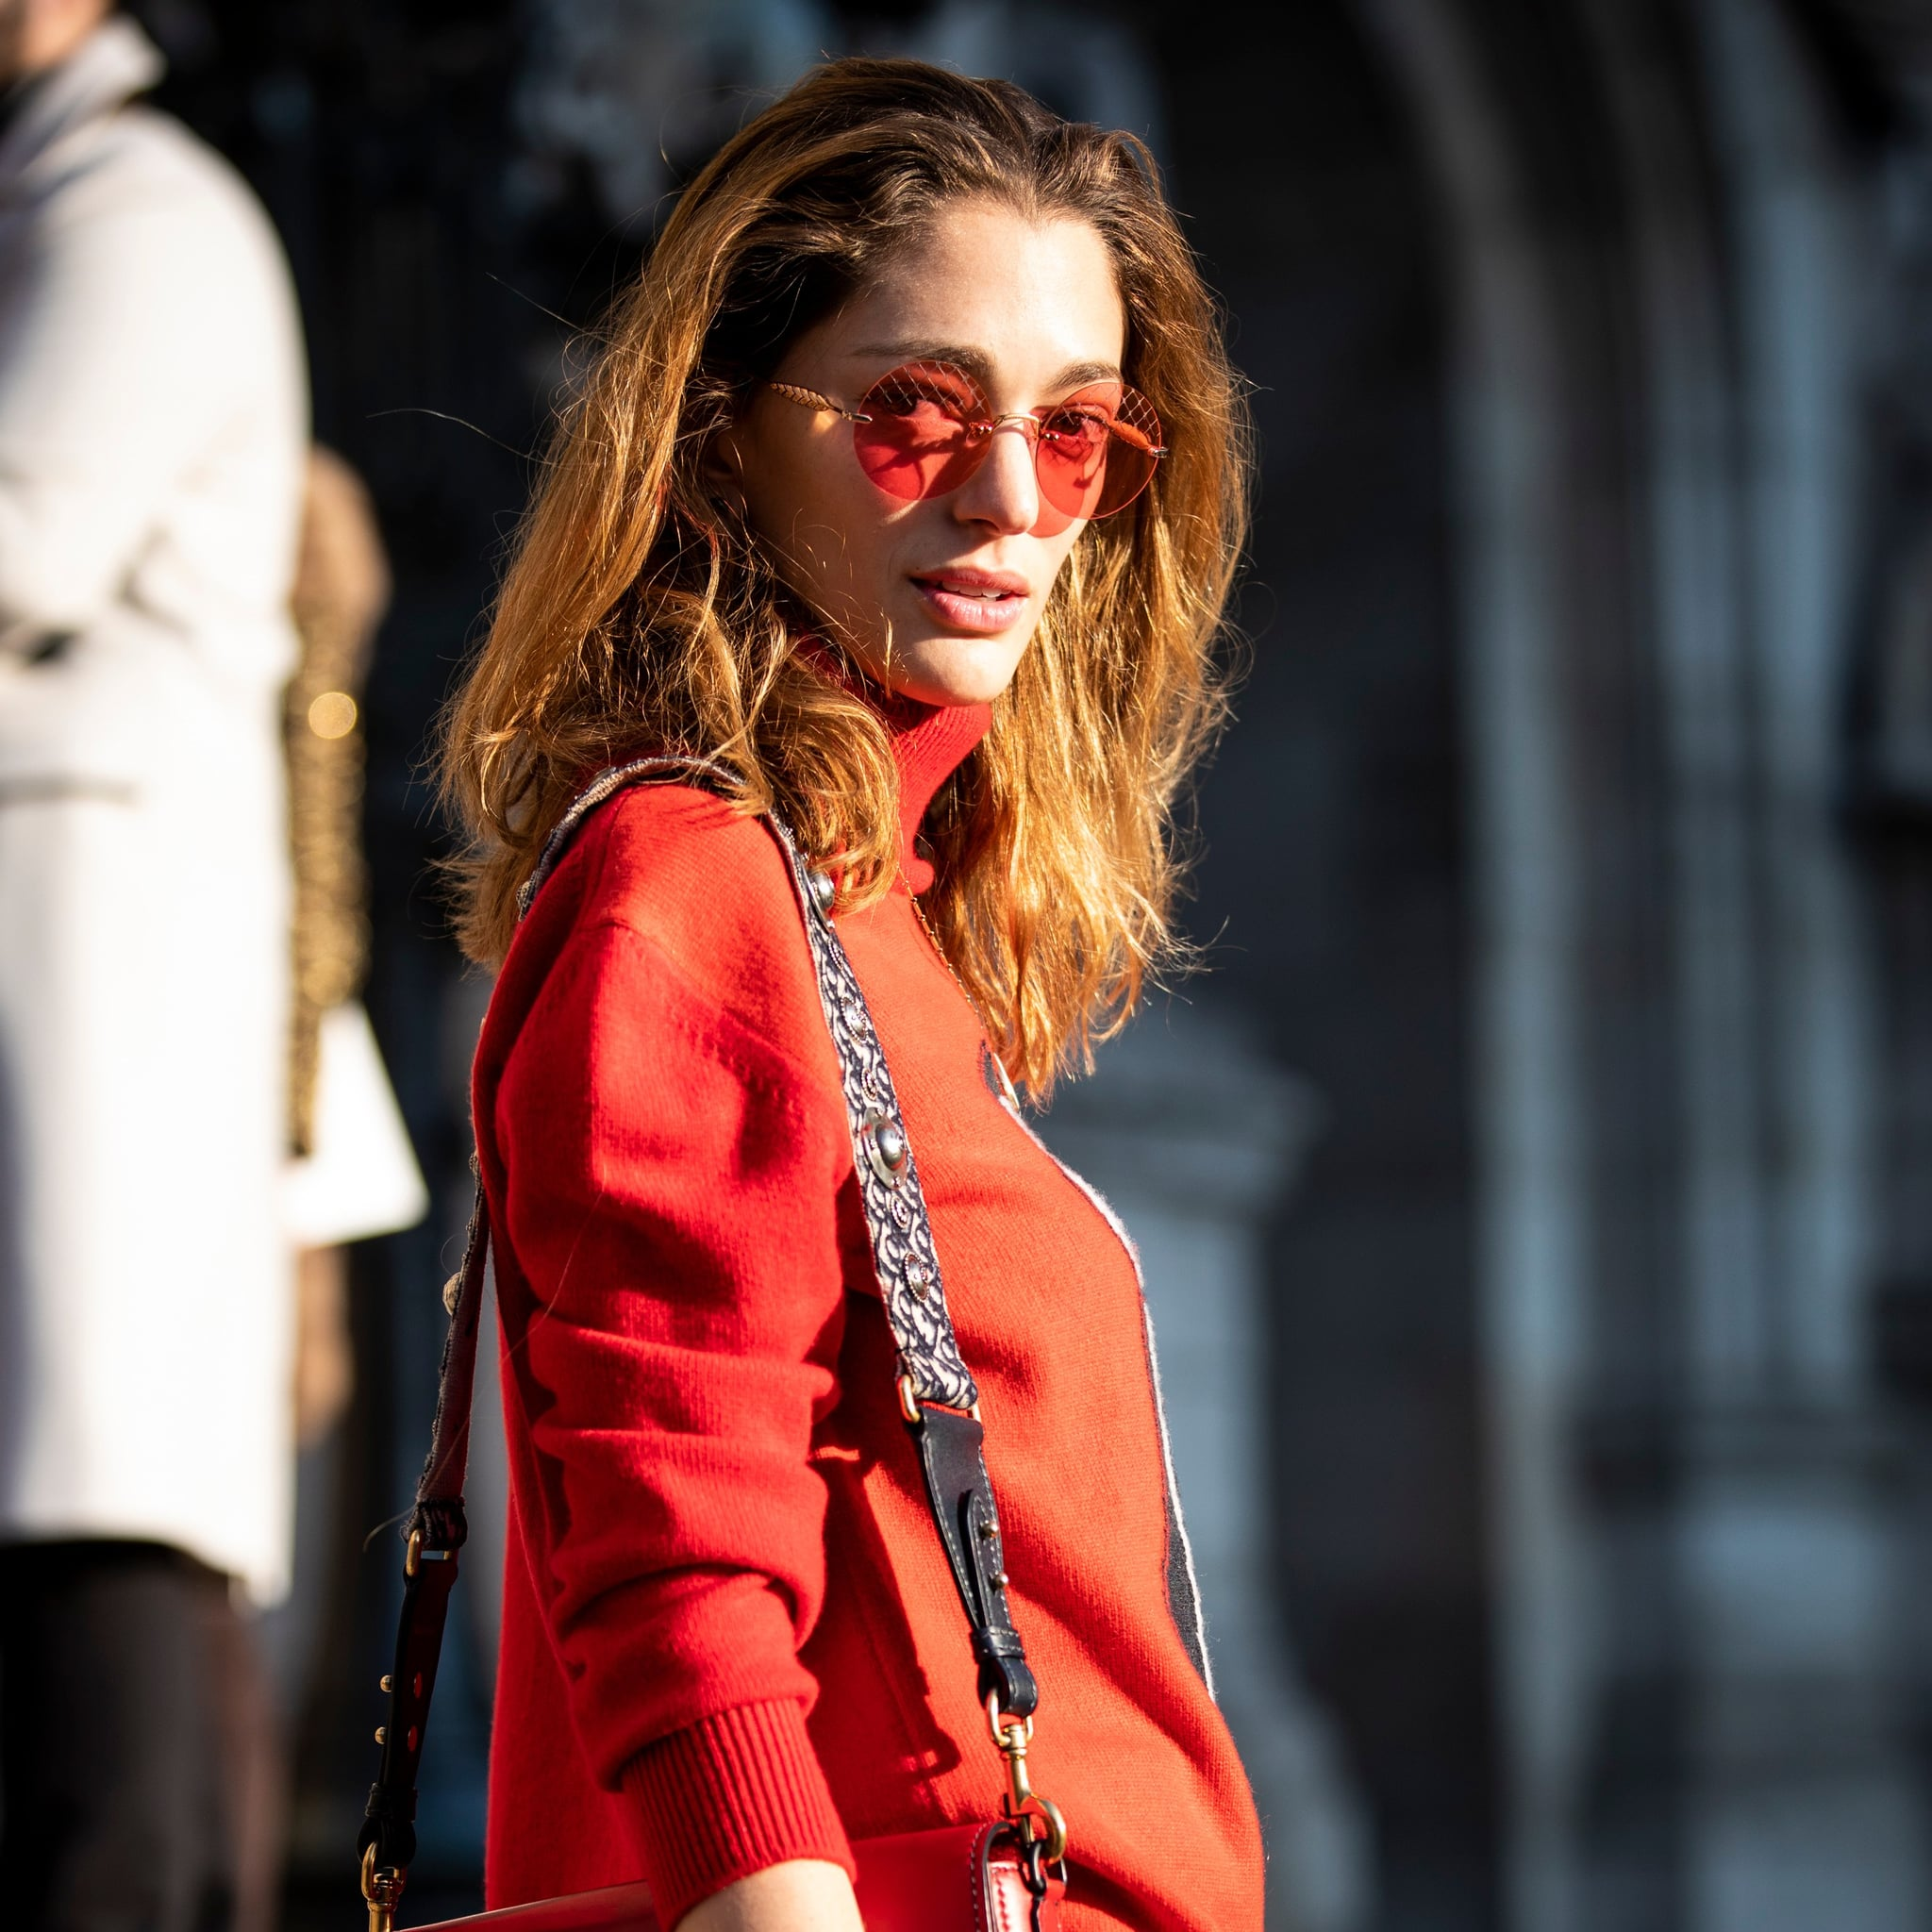 382171a00b4b Sunglasses Trends For 2019 | POPSUGAR Fashion